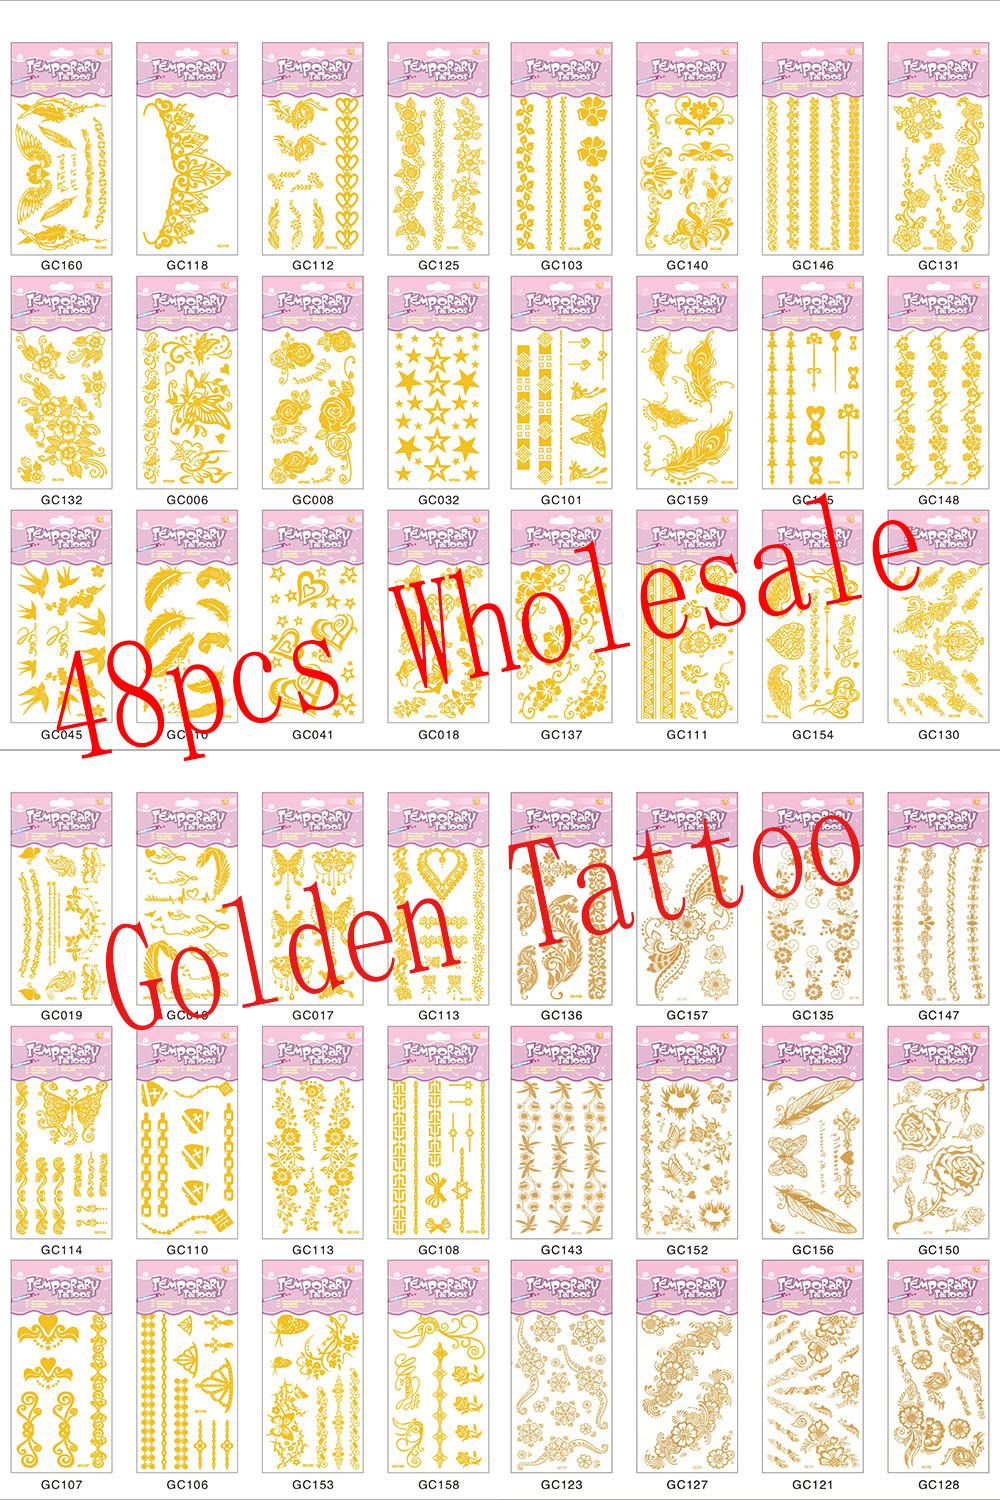 Wholesale 48 pcs Golden Tattoo Sticker metallic fake sexy body print gold tatoo temporary stickers feather foamposites sleeves(China (Mainland))